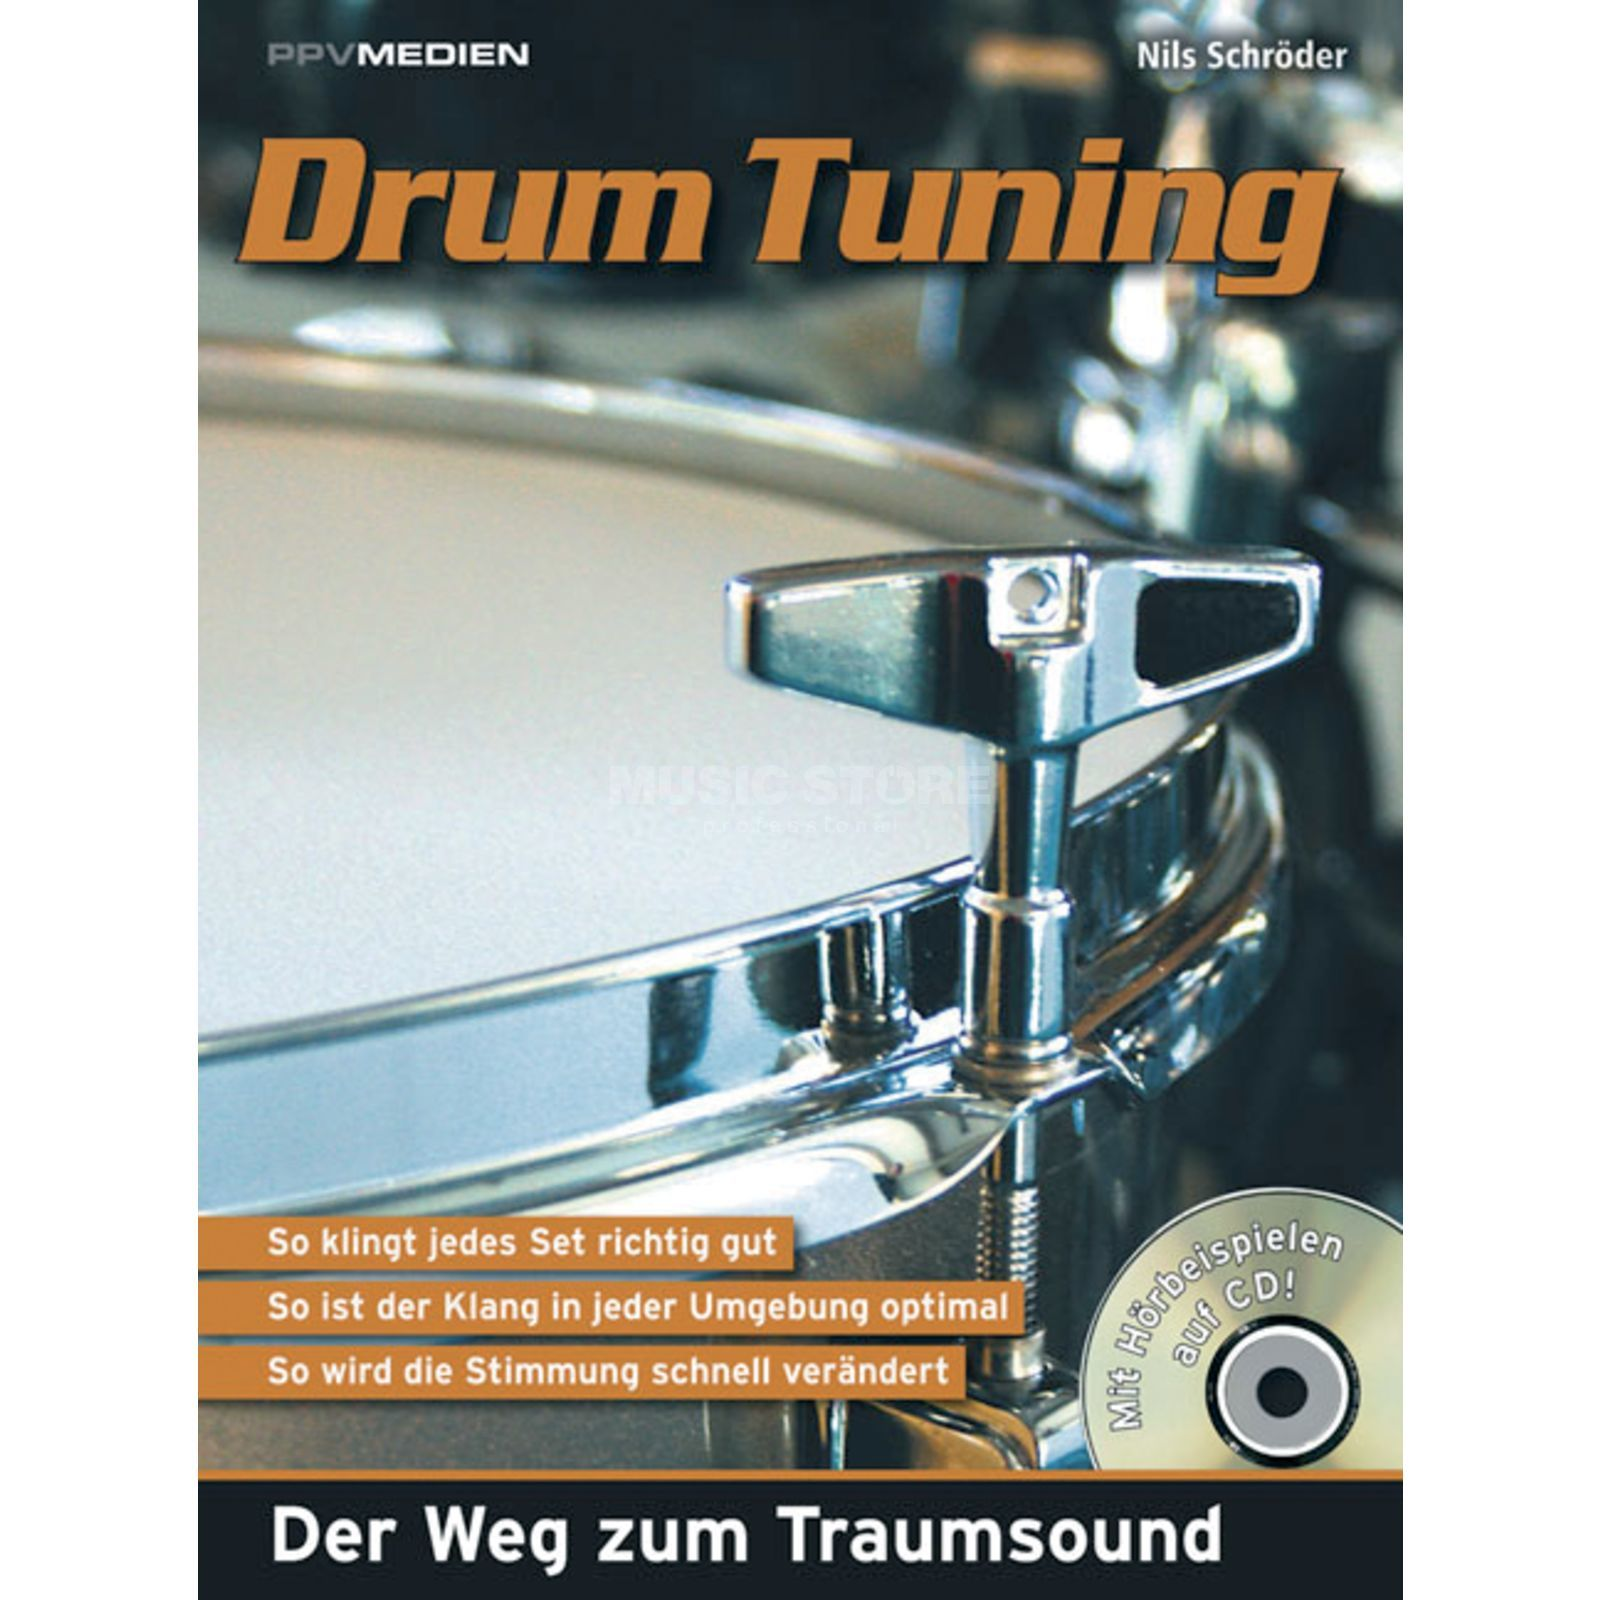 PPV Medien Drum Tuning Schröder, Buch inkl. CD Product Image